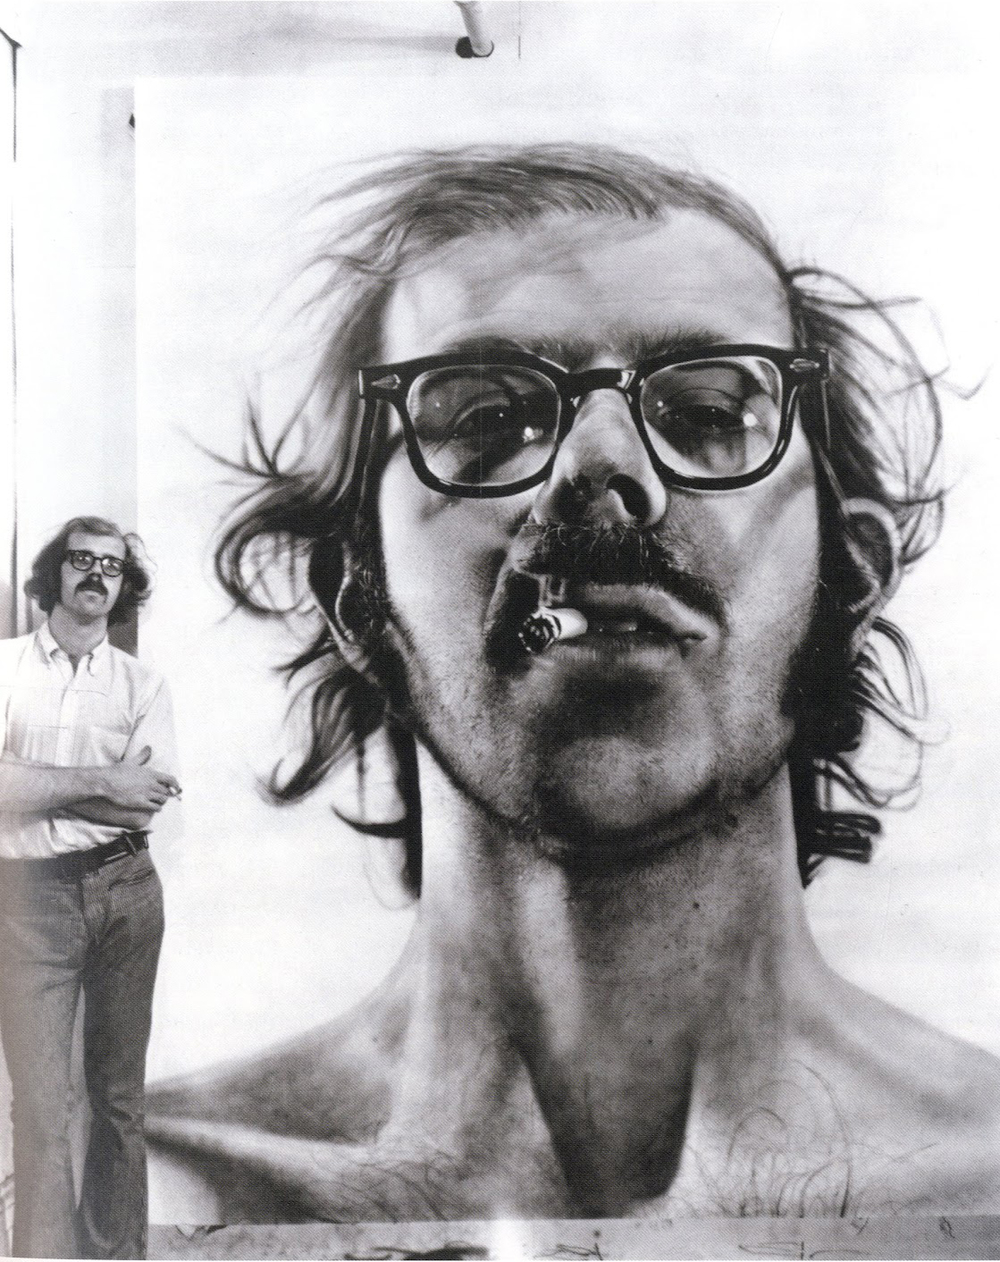 chuck-close-big-sp-1968-cropped.jpg